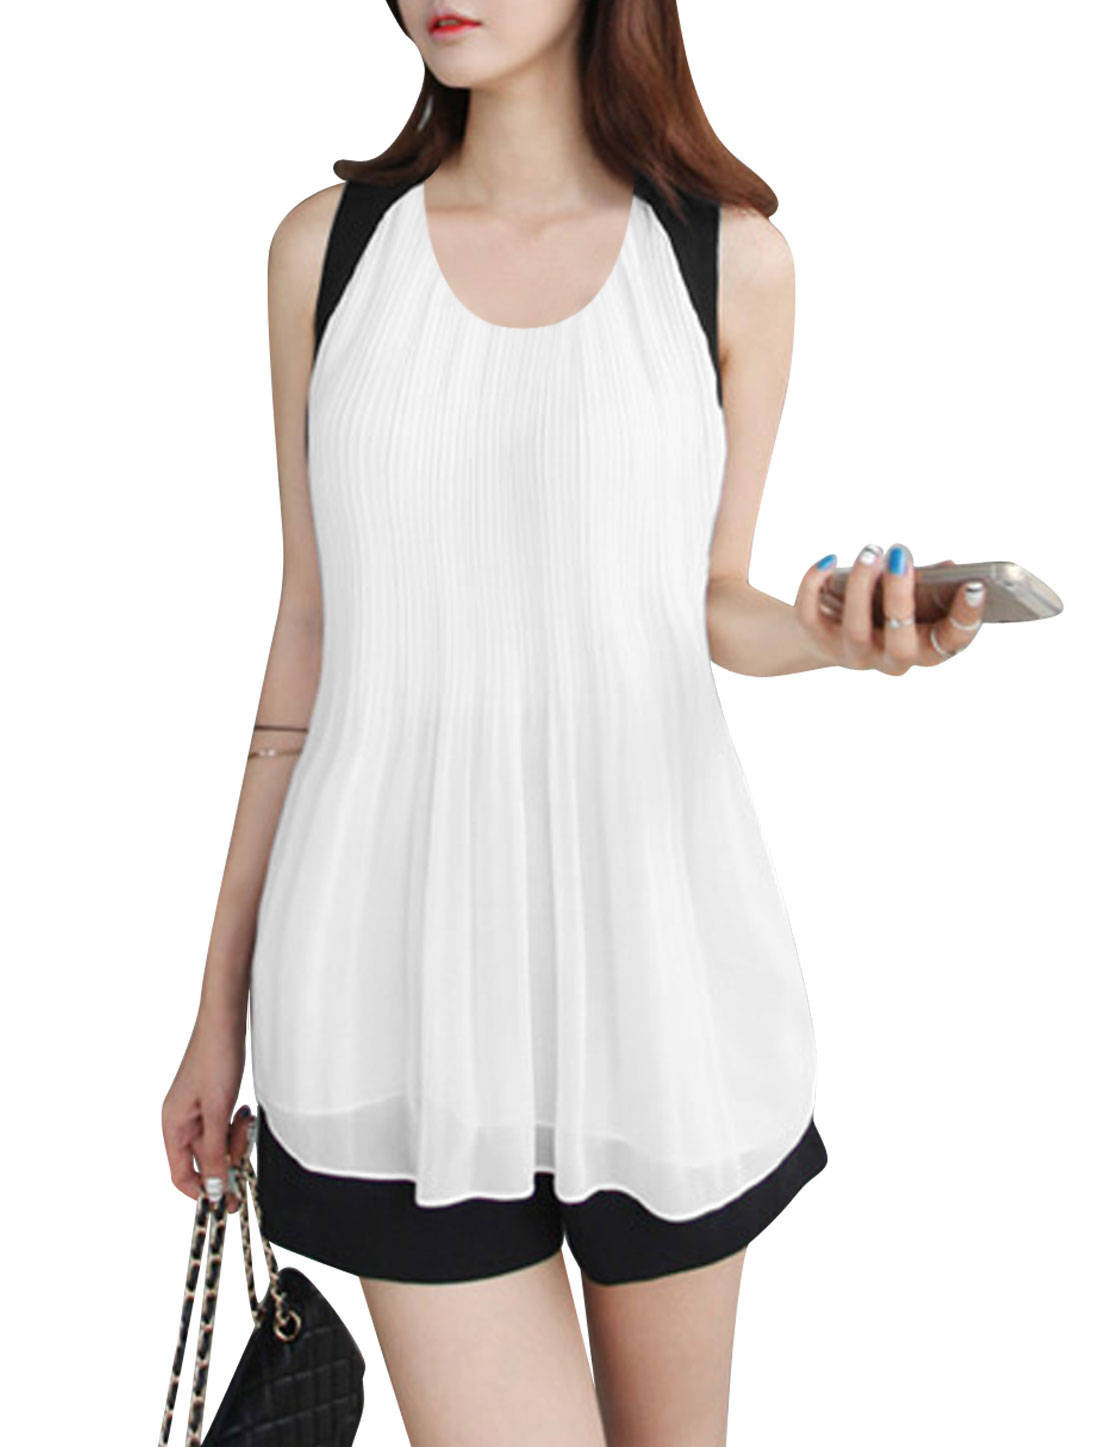 Lady Color Block Pleated Front Self Tie Strap Casual Chiffon Top White Black S